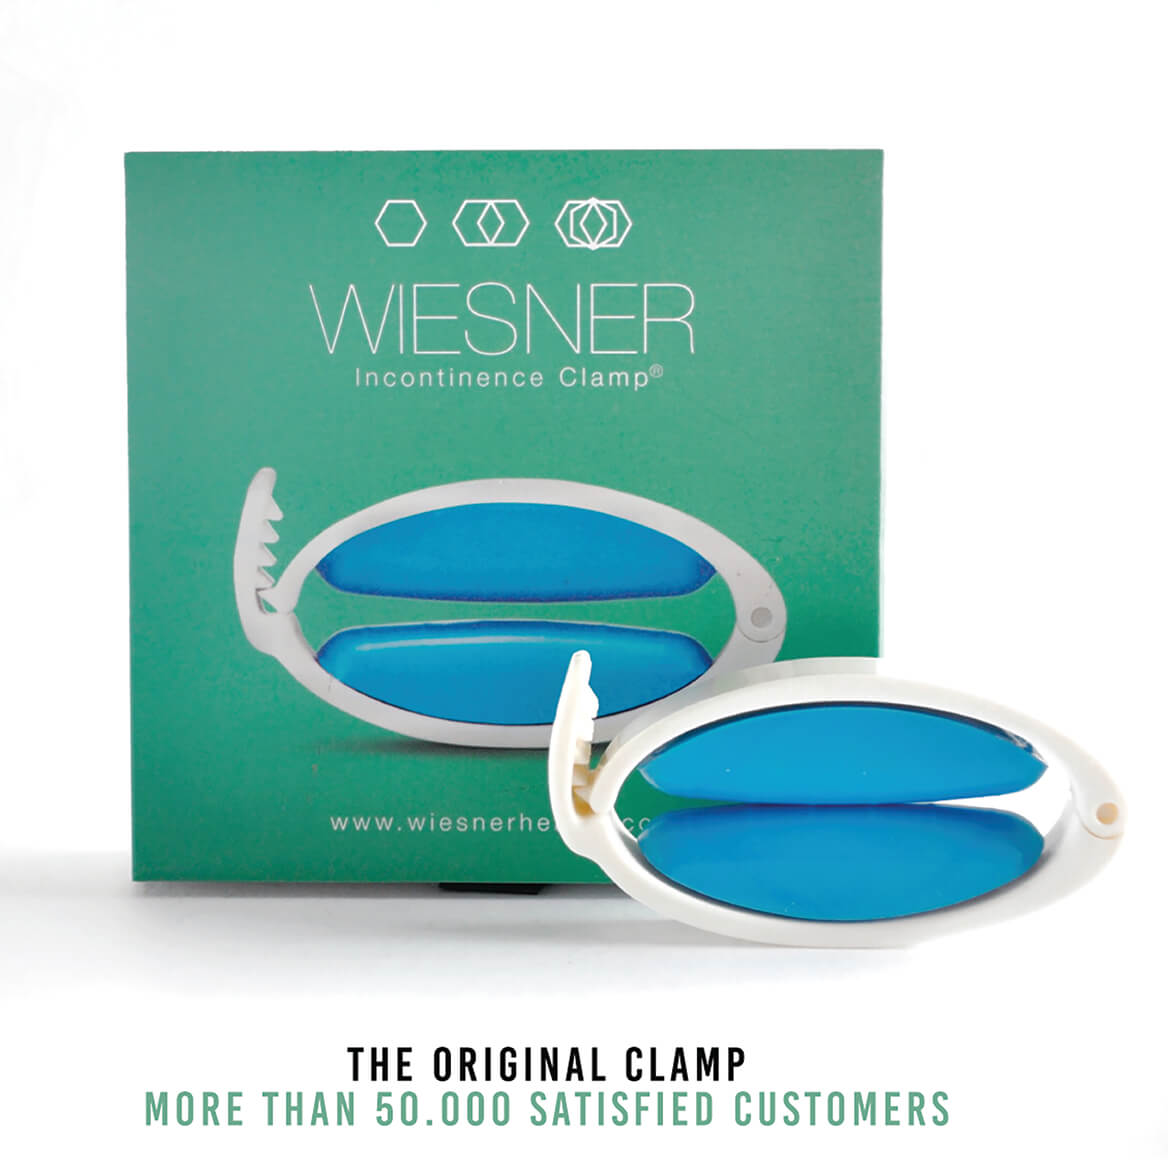 Wiesner Male Incontinence Clamp-371735